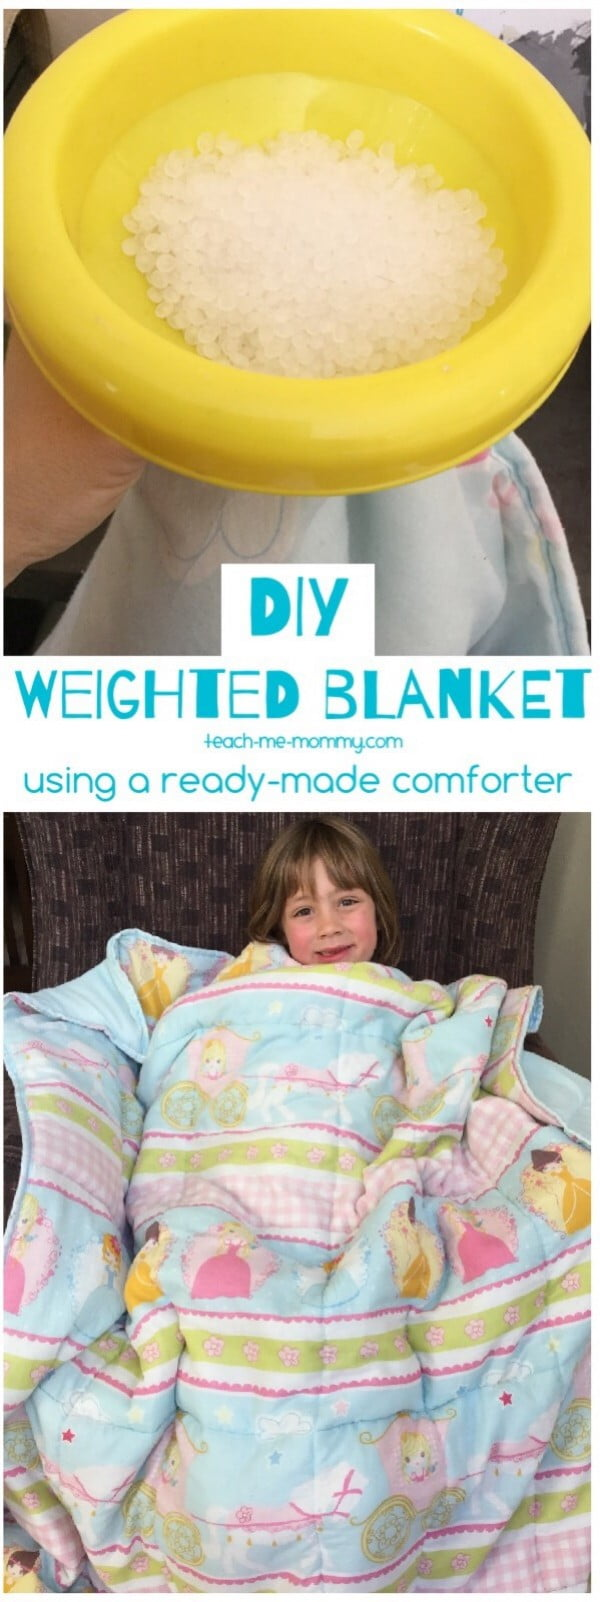 DIY Weighted Blanket #DIY #crafts #bedroom